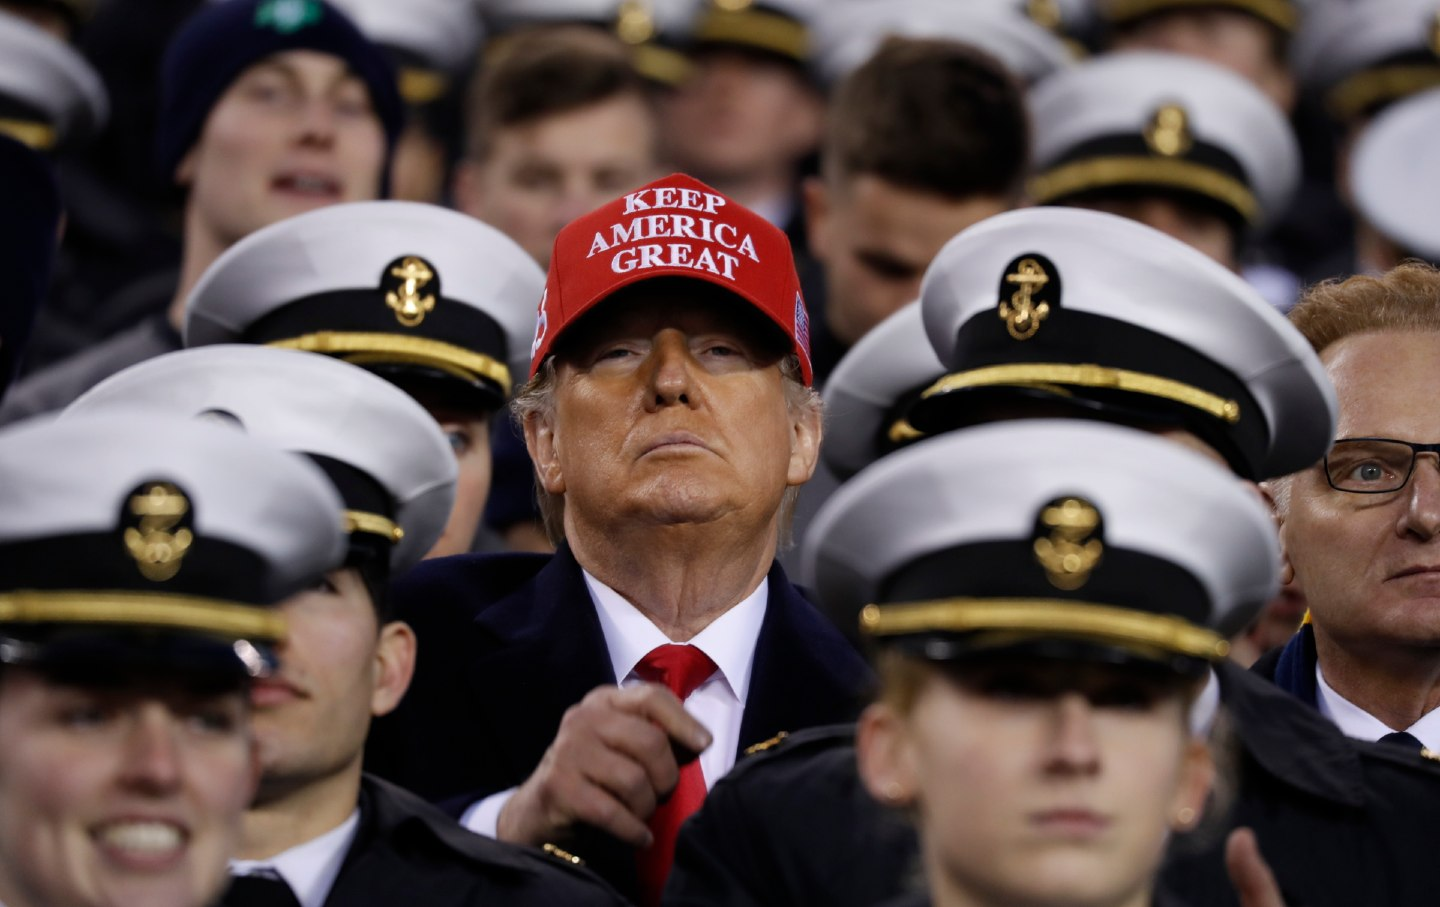 Trump and Navy